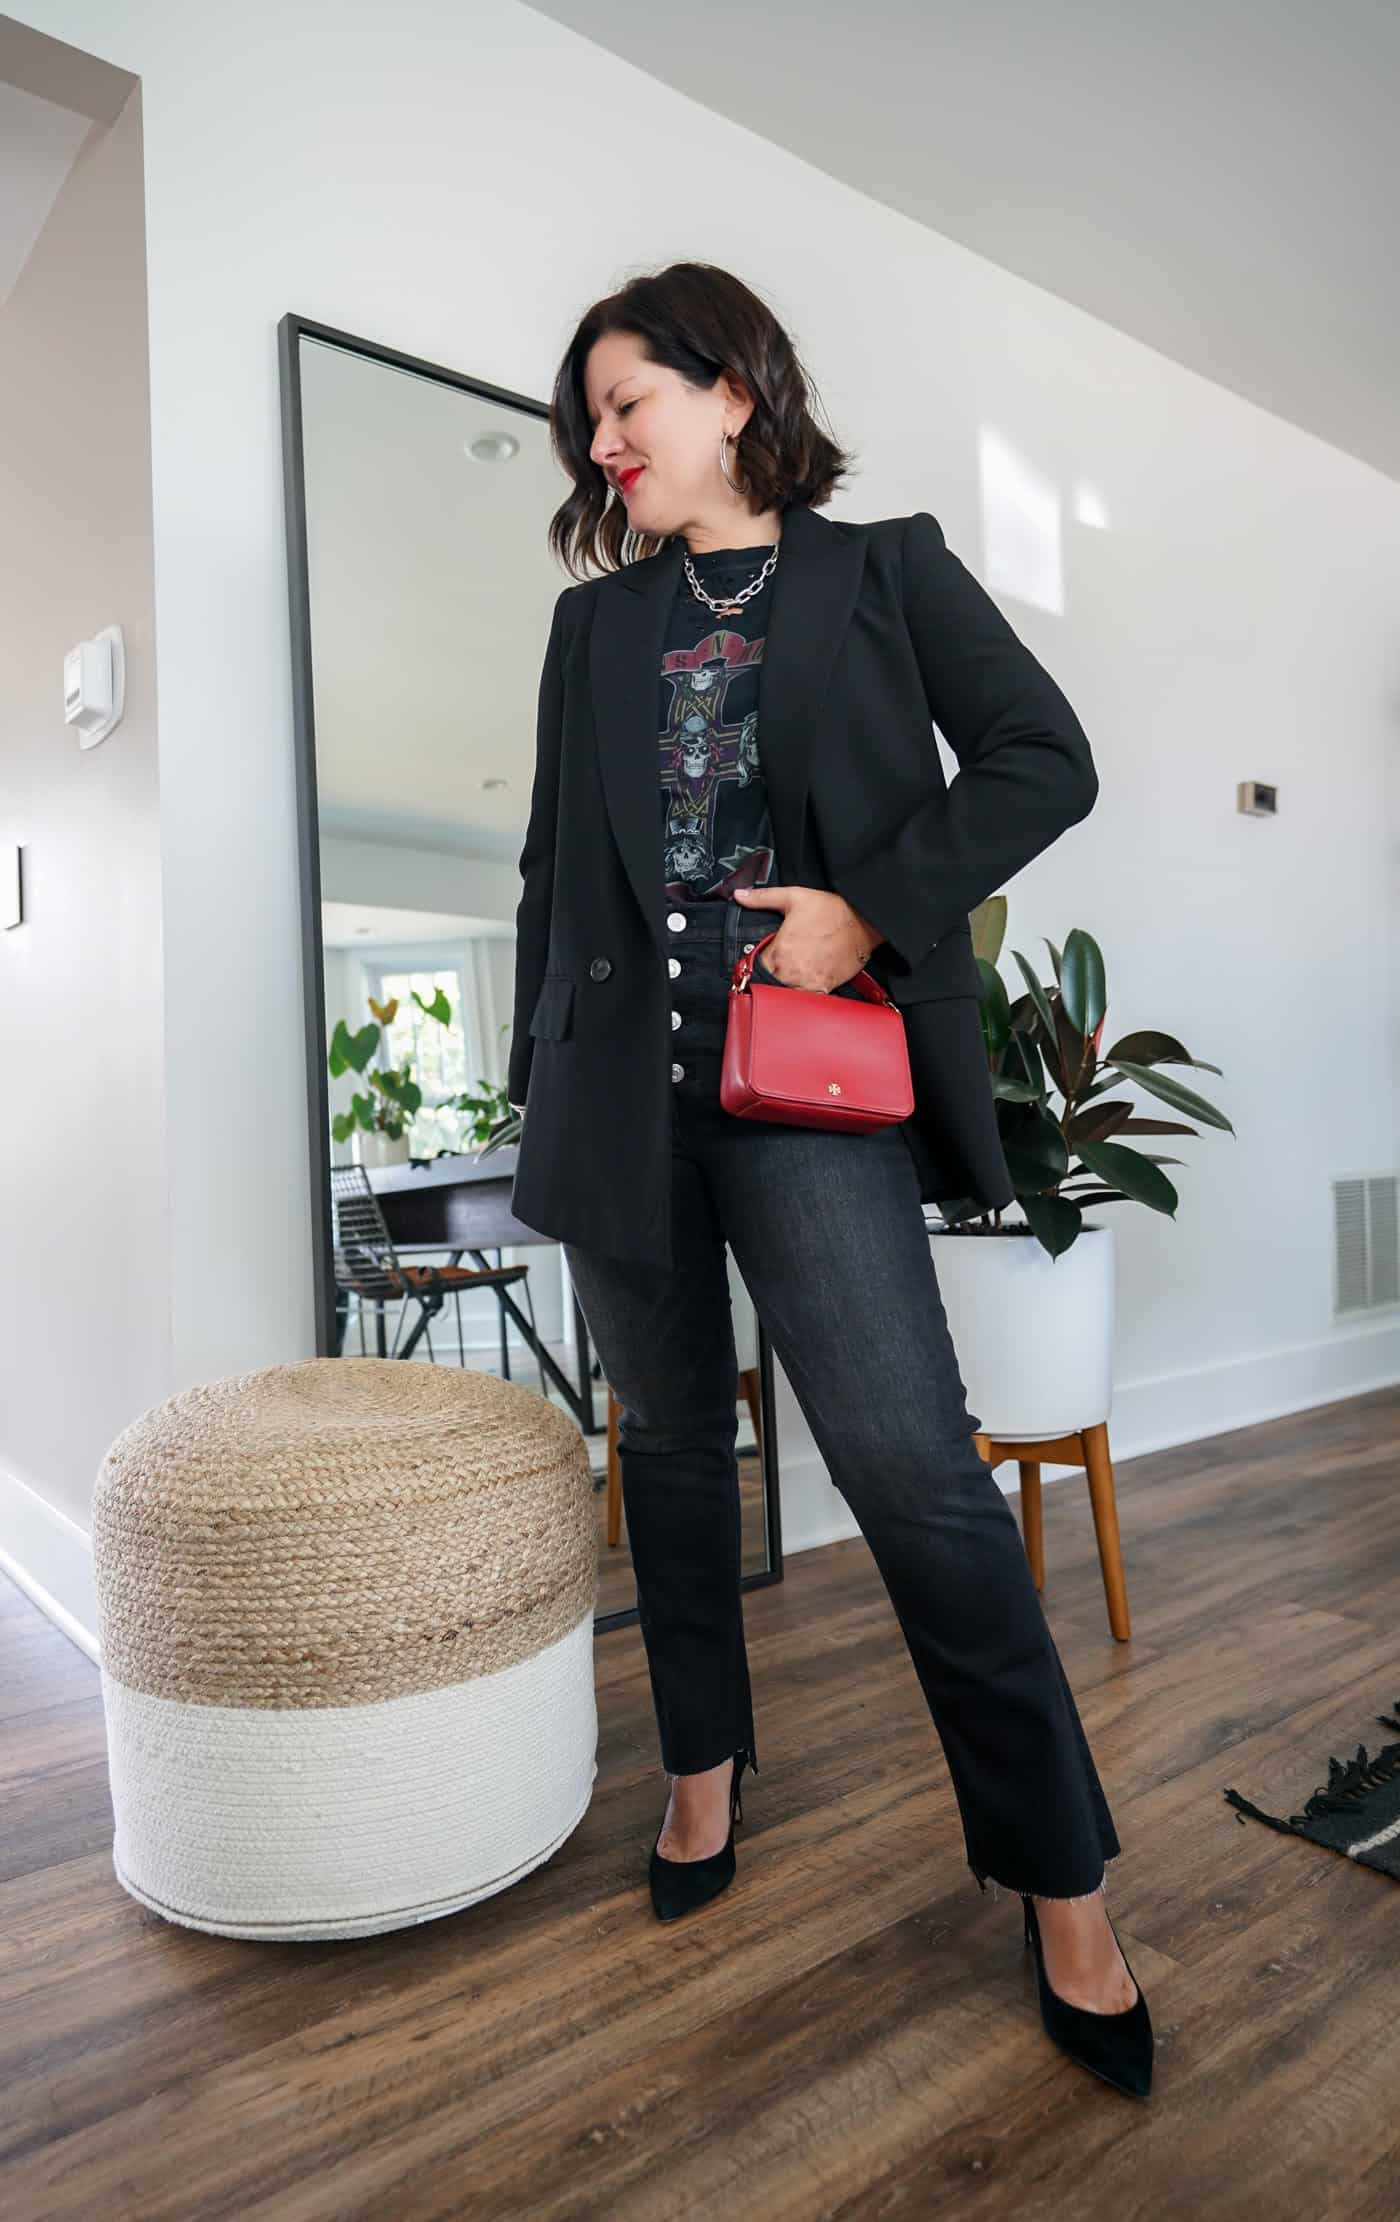 A womens black blazer with jeans and black heels